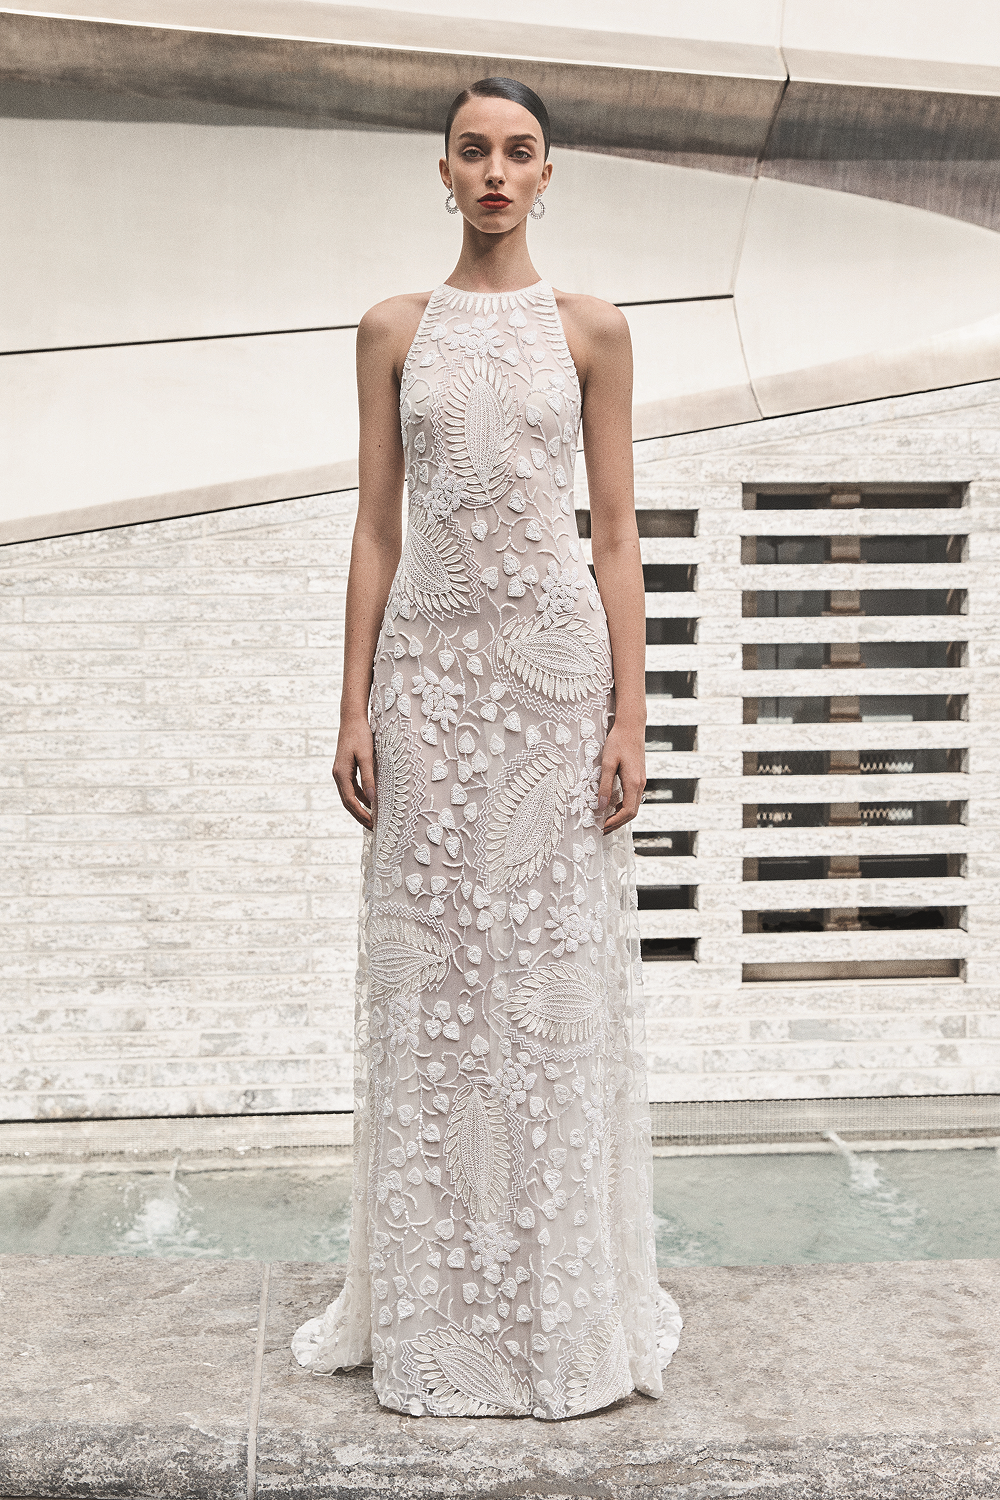 Weddinspired | 35+ Stylish Halterneck Wedding Dresses | Naeem Khan - From the Fall 2019 collection